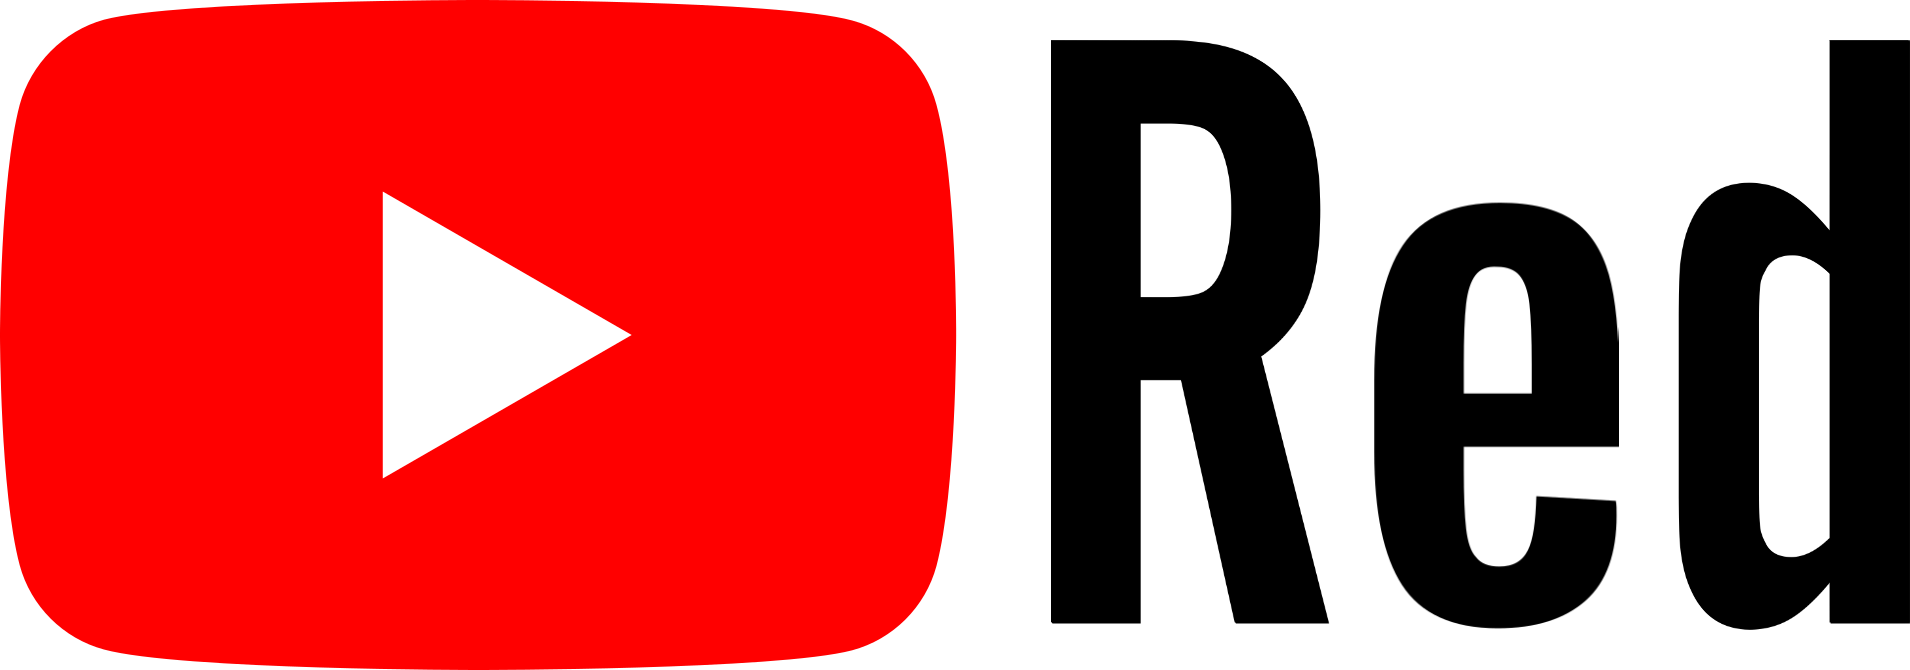 Youtube red Logos.